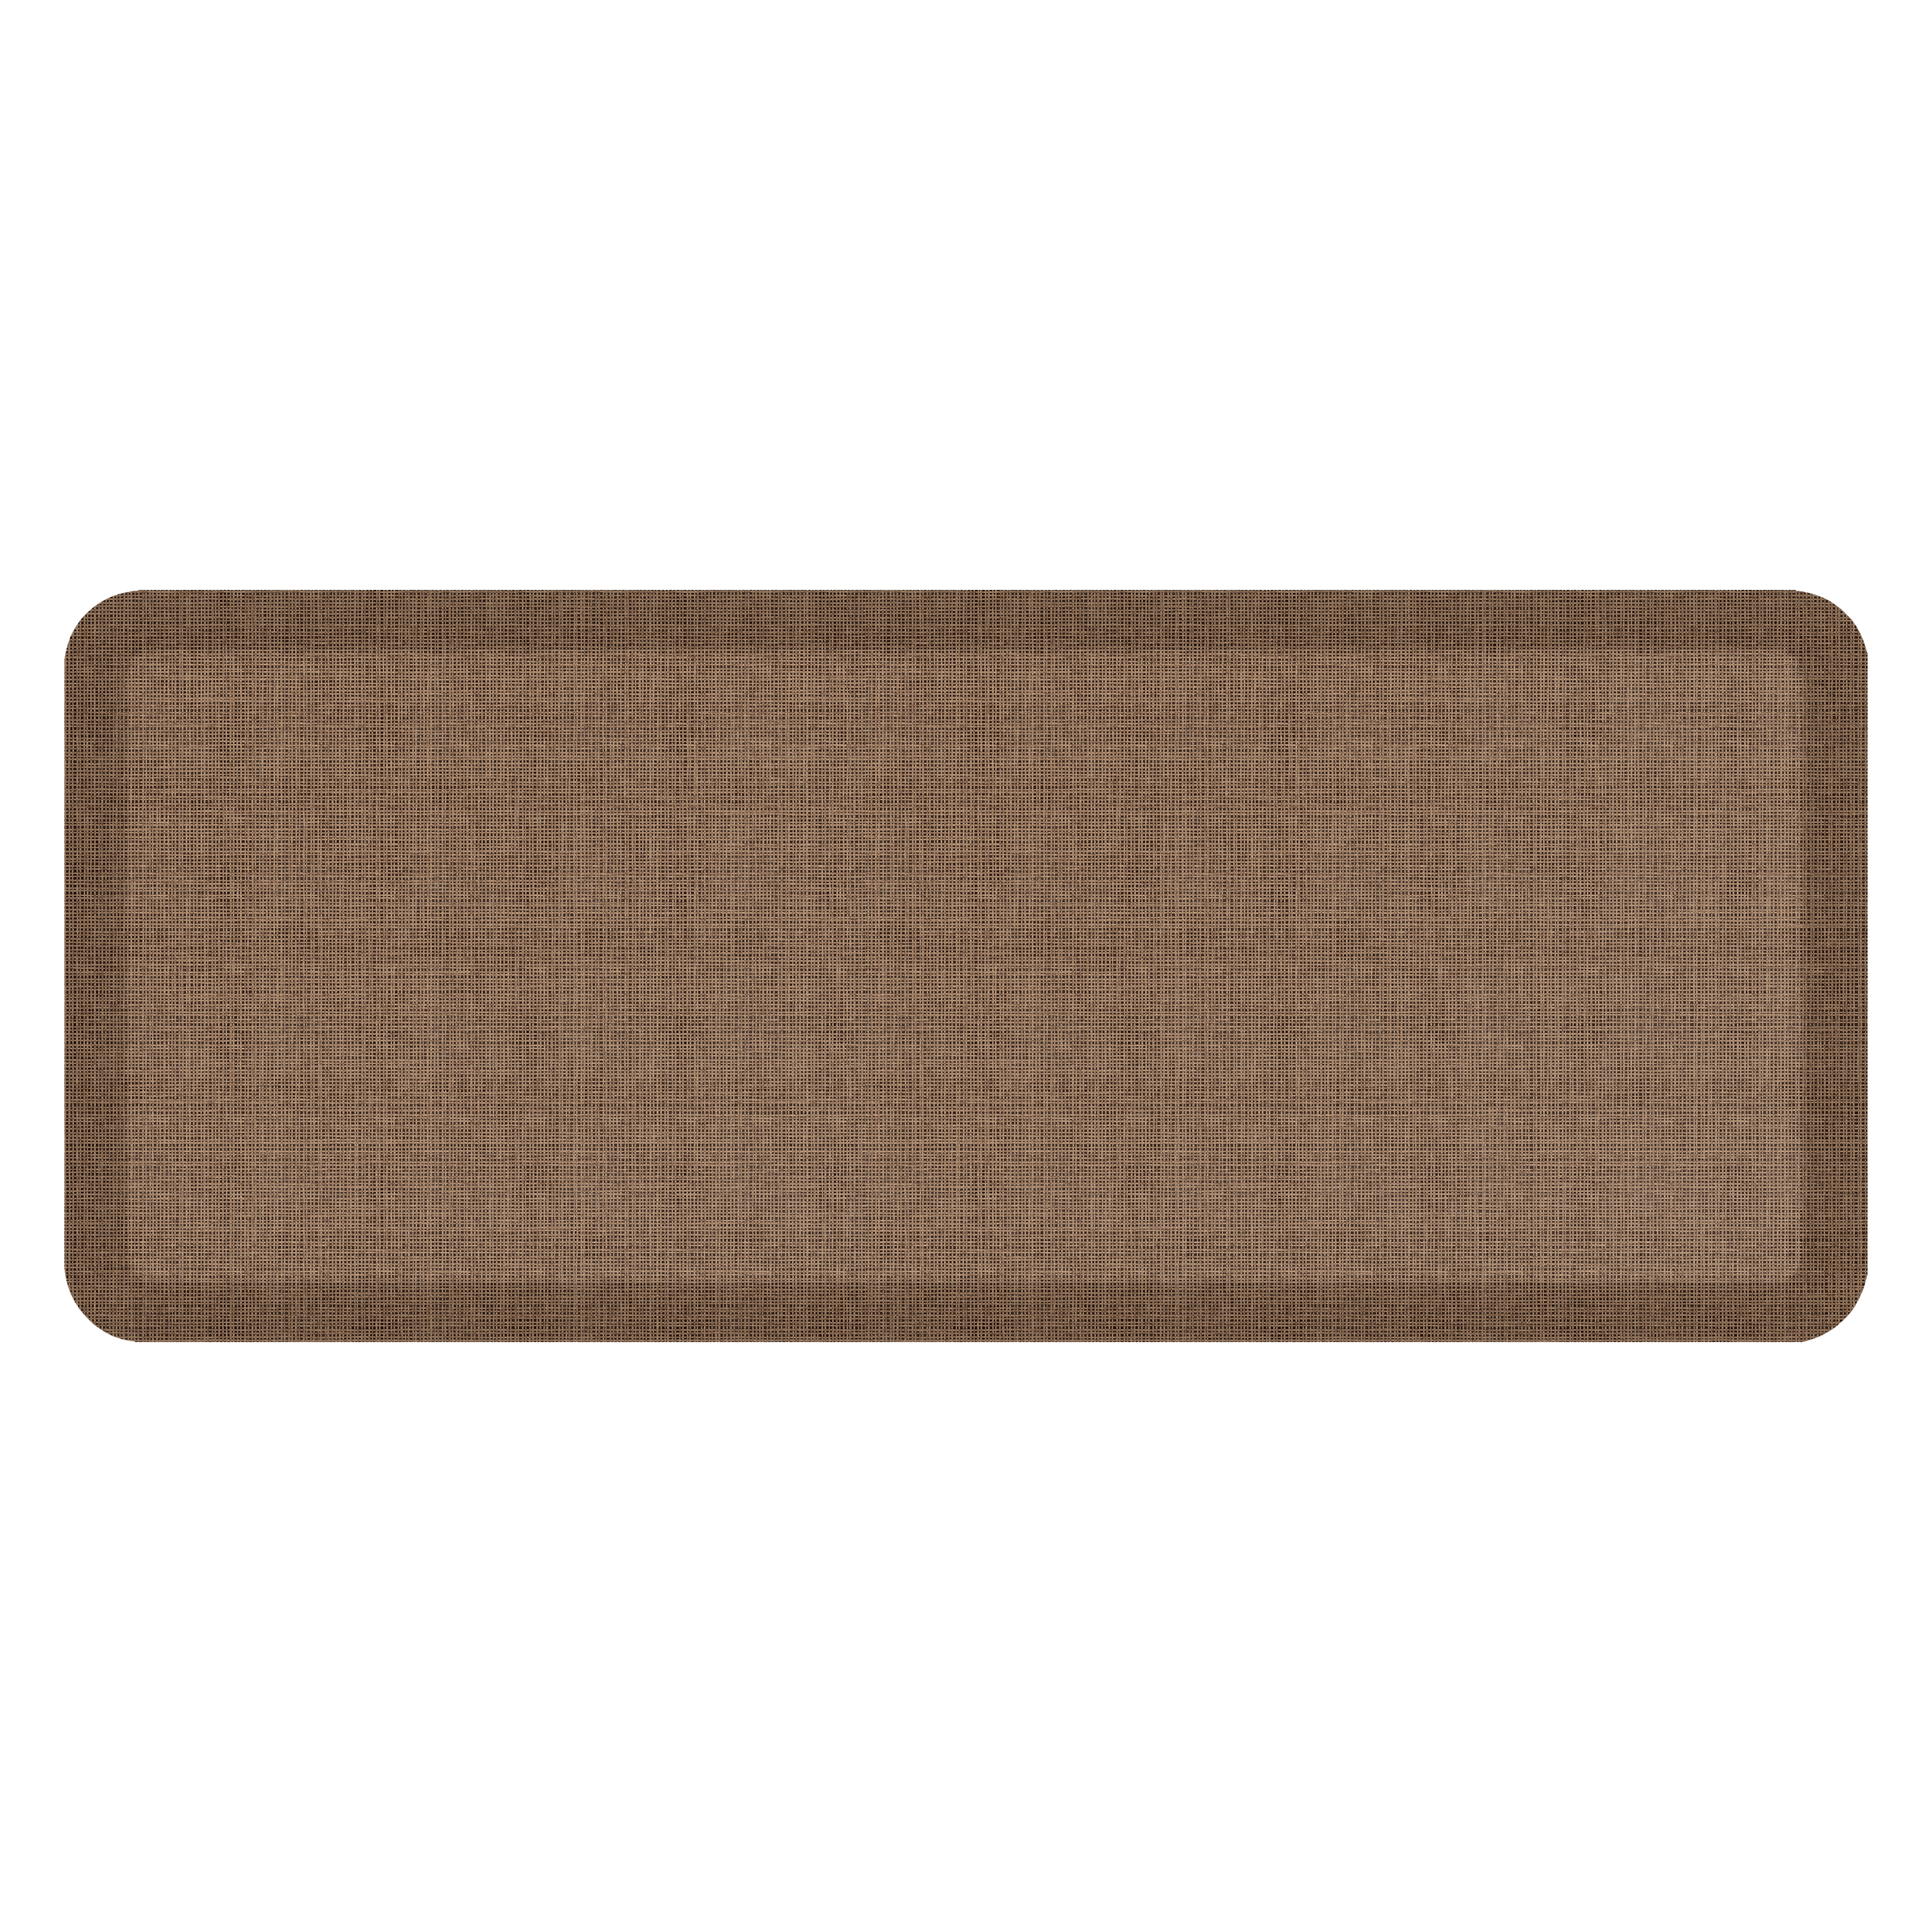 NewLife by GelPro Designer Comfort Kitchen Floor Mat - 20...